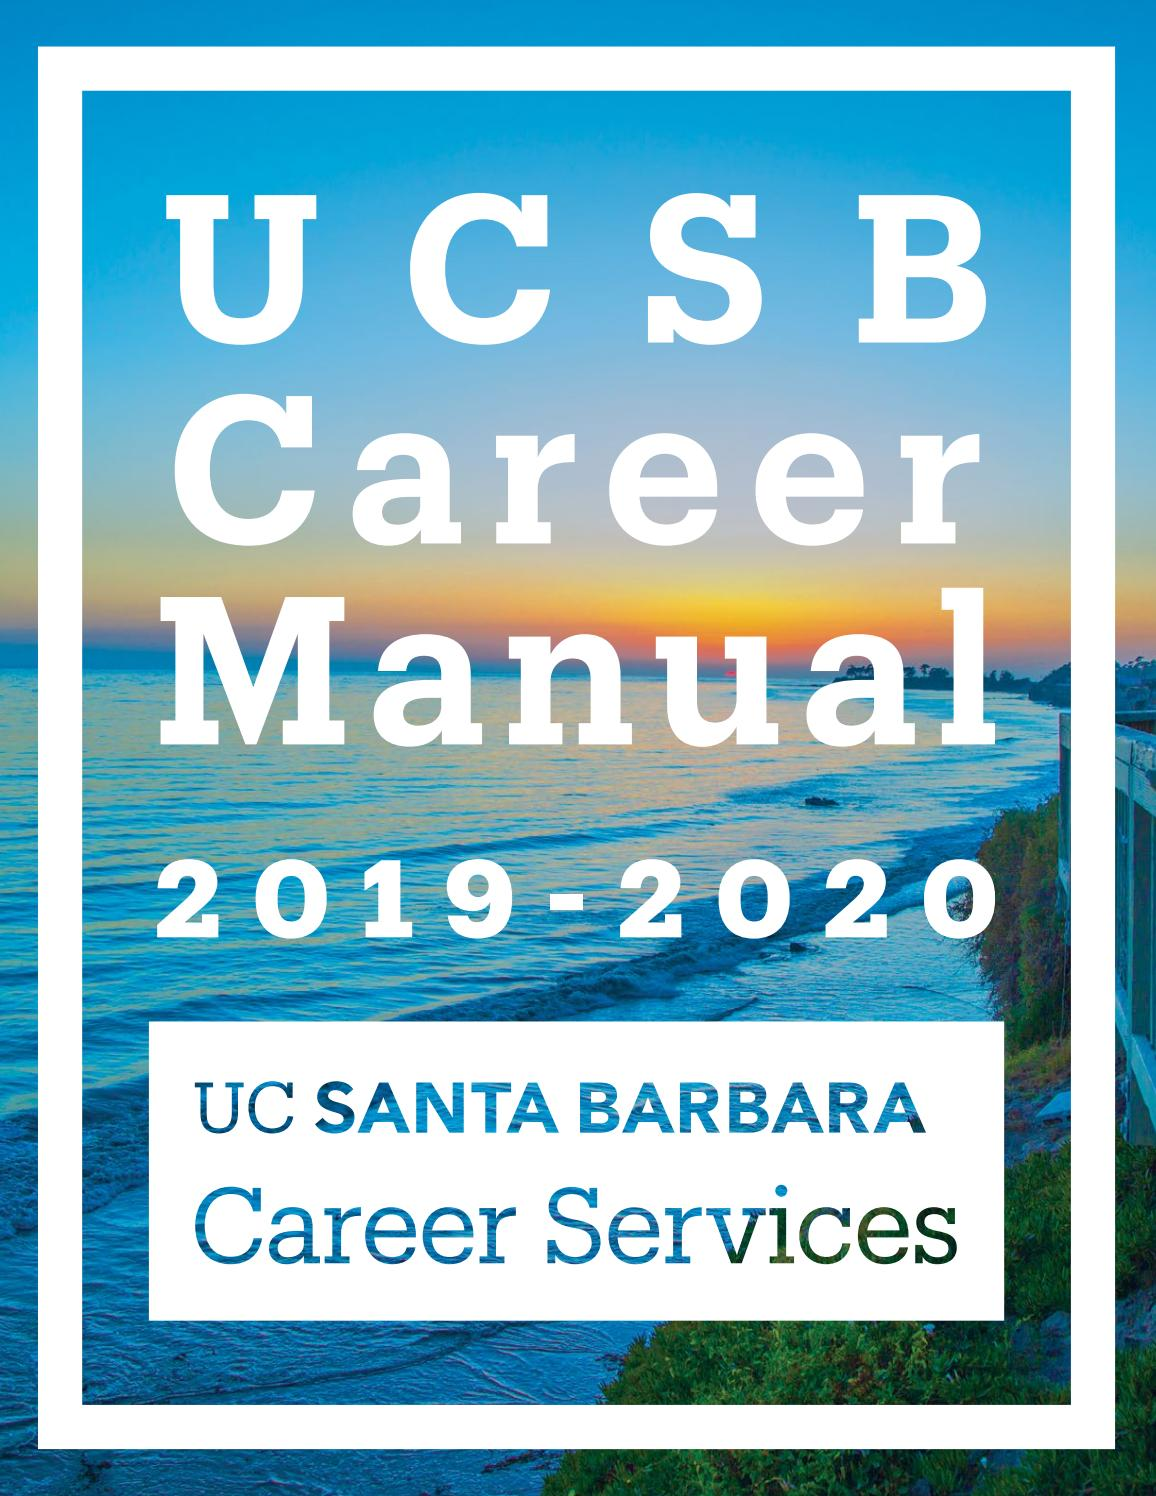 UCSB Career Manual 2019-2020 by UCSB Career Services - issuu